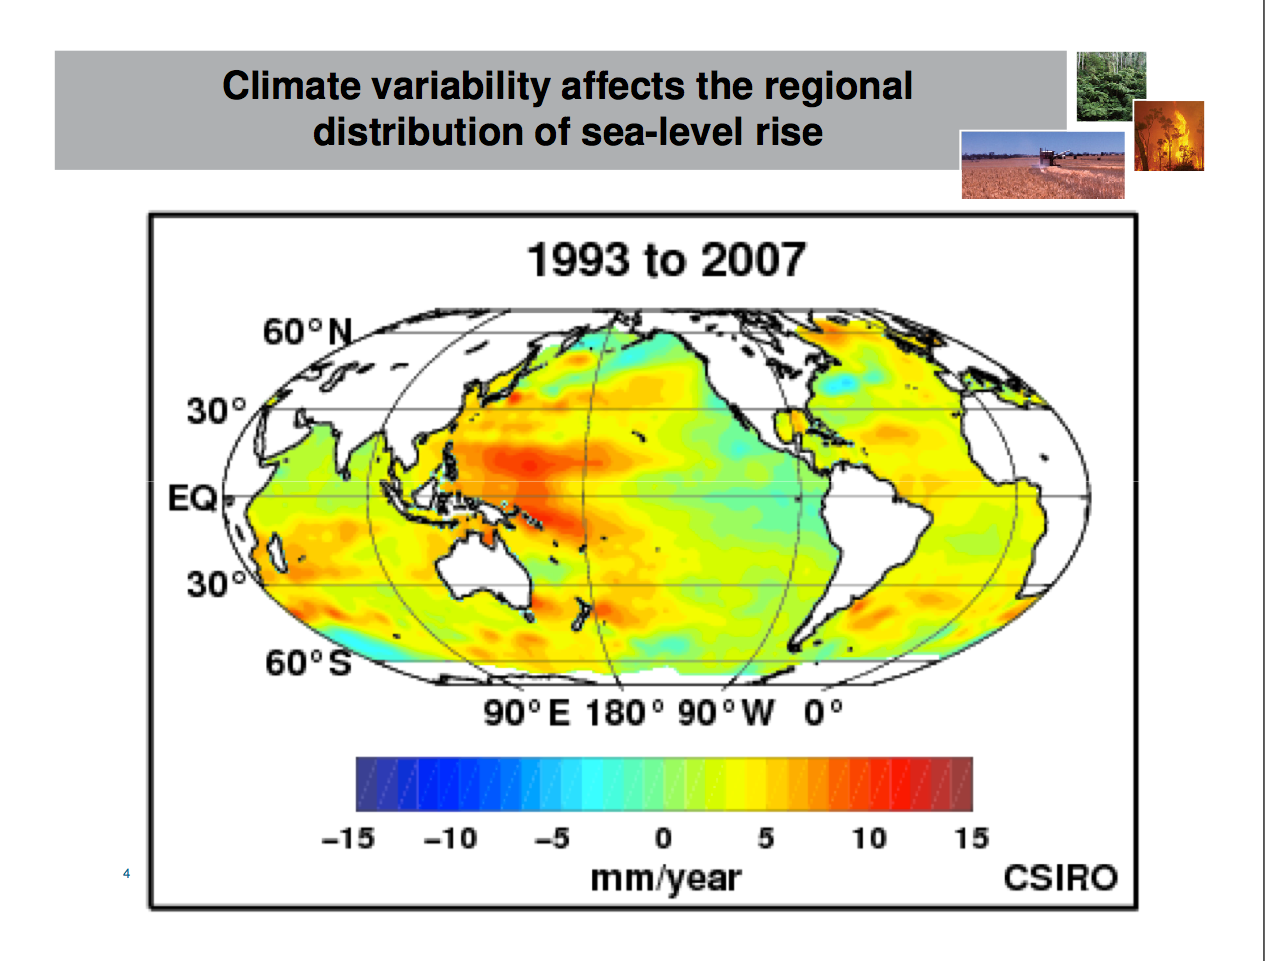 http://hardenup.org/media/312077/climate_variability__and_sea_level_rise_john_church_image.png